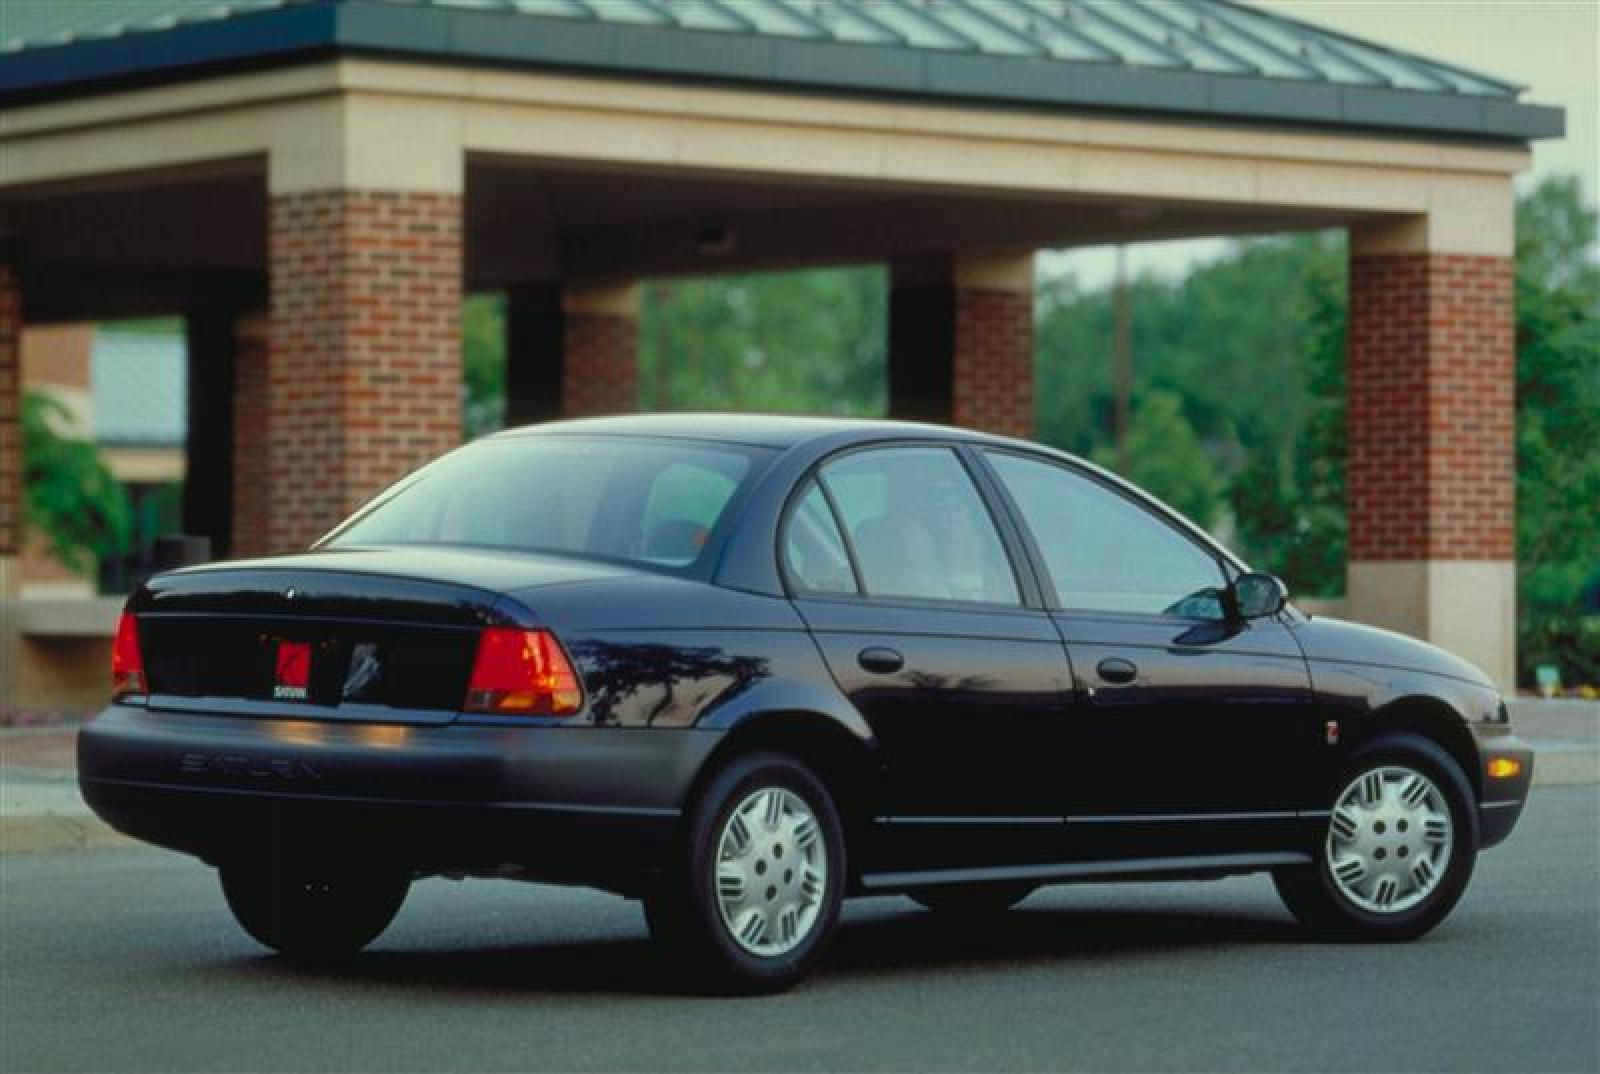 Saturn s-series photo - 6